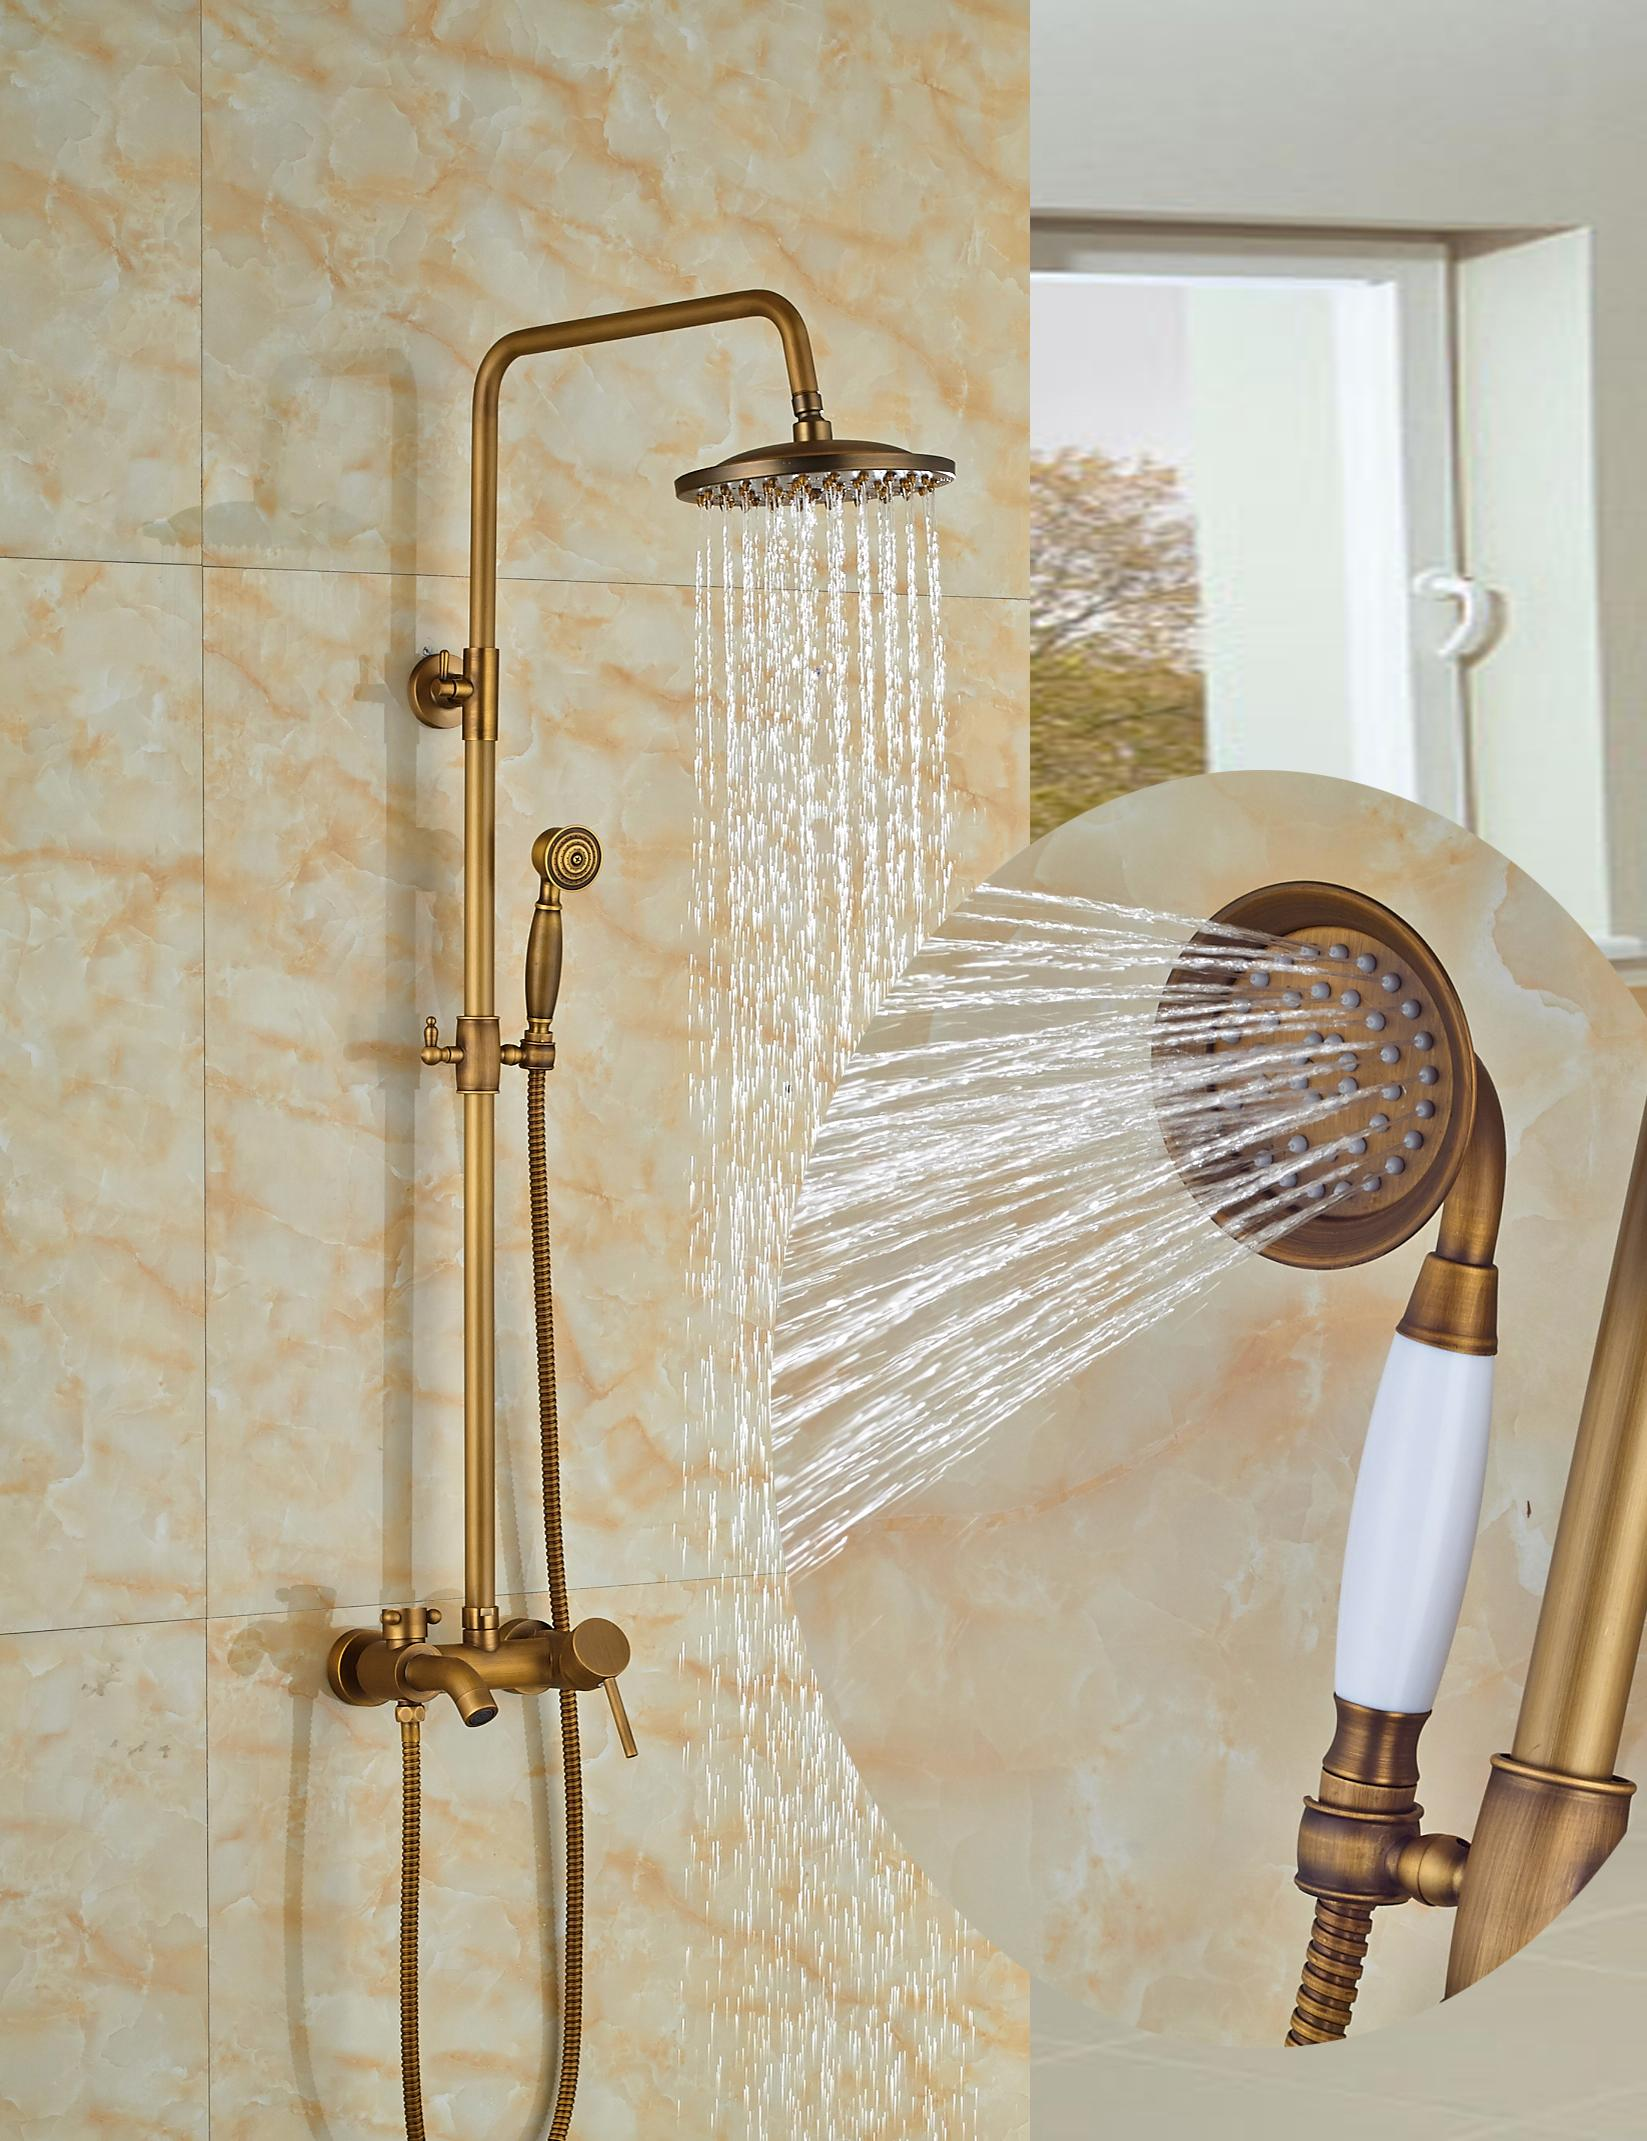 "Wholesale And Retail Antique Brass Tub Spout Valve 8"" Round Rain Shower Faucet w/ Hand Held Shower Mixer Tap Wall Mounted"